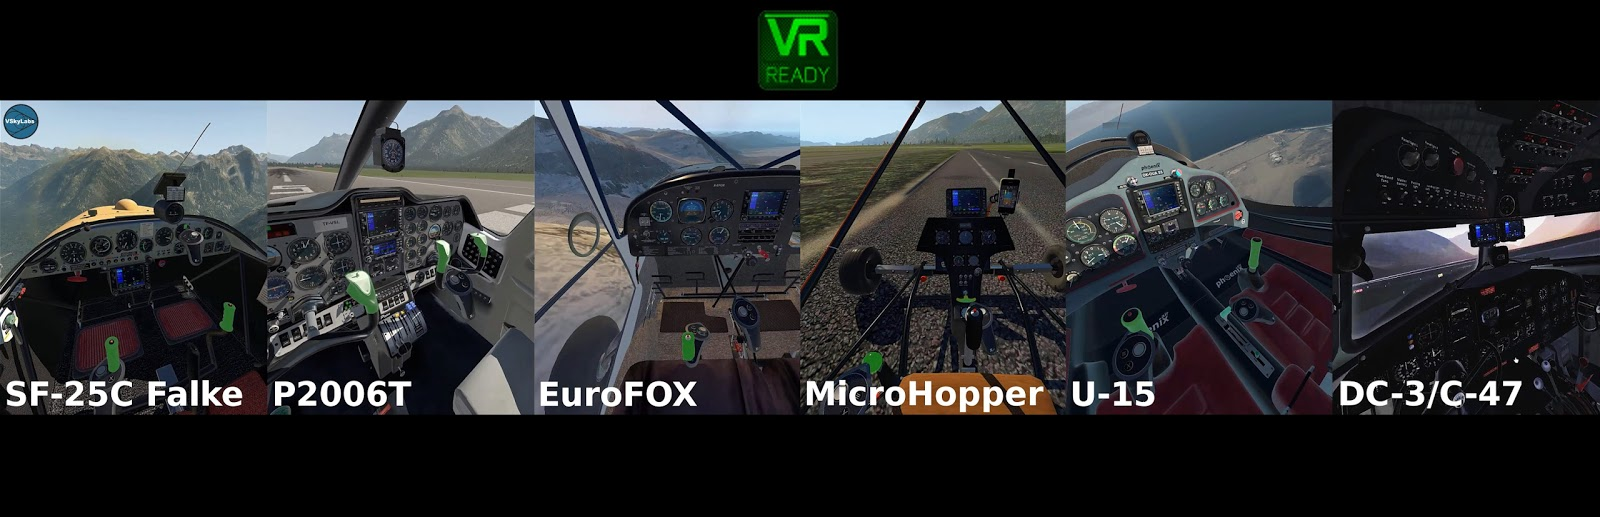 VSKYLABS VR PROJECTS